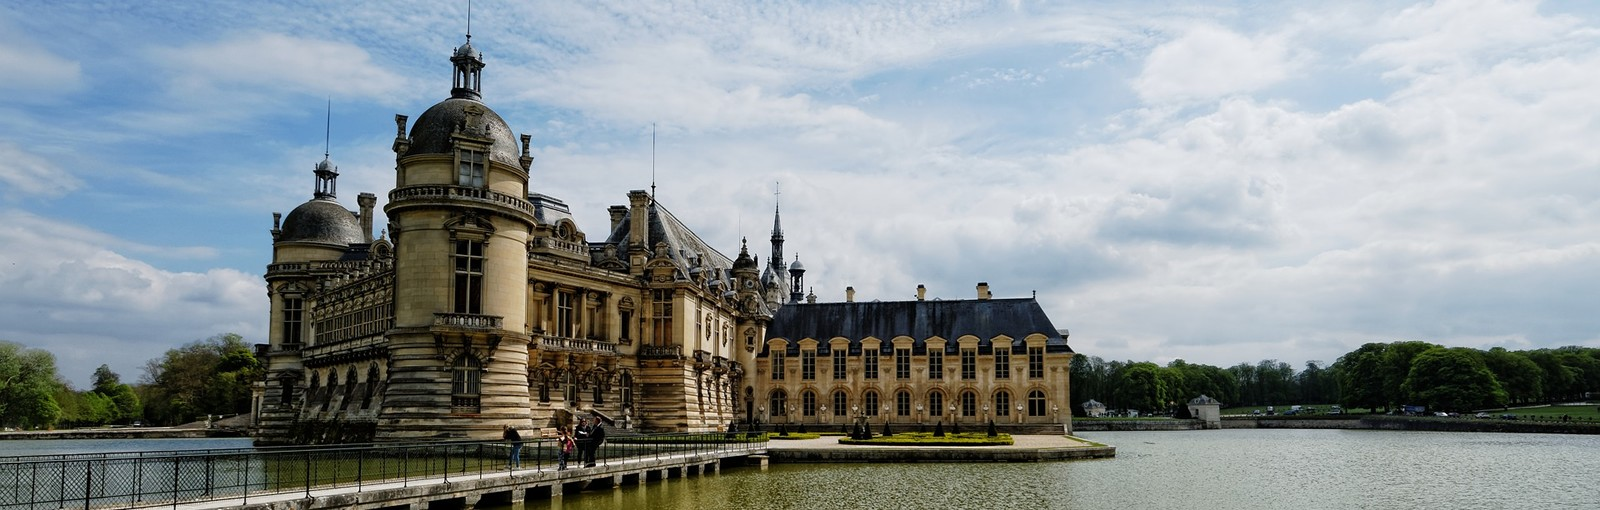 Tours Chantilly - Medio-días - Excursiones desde París